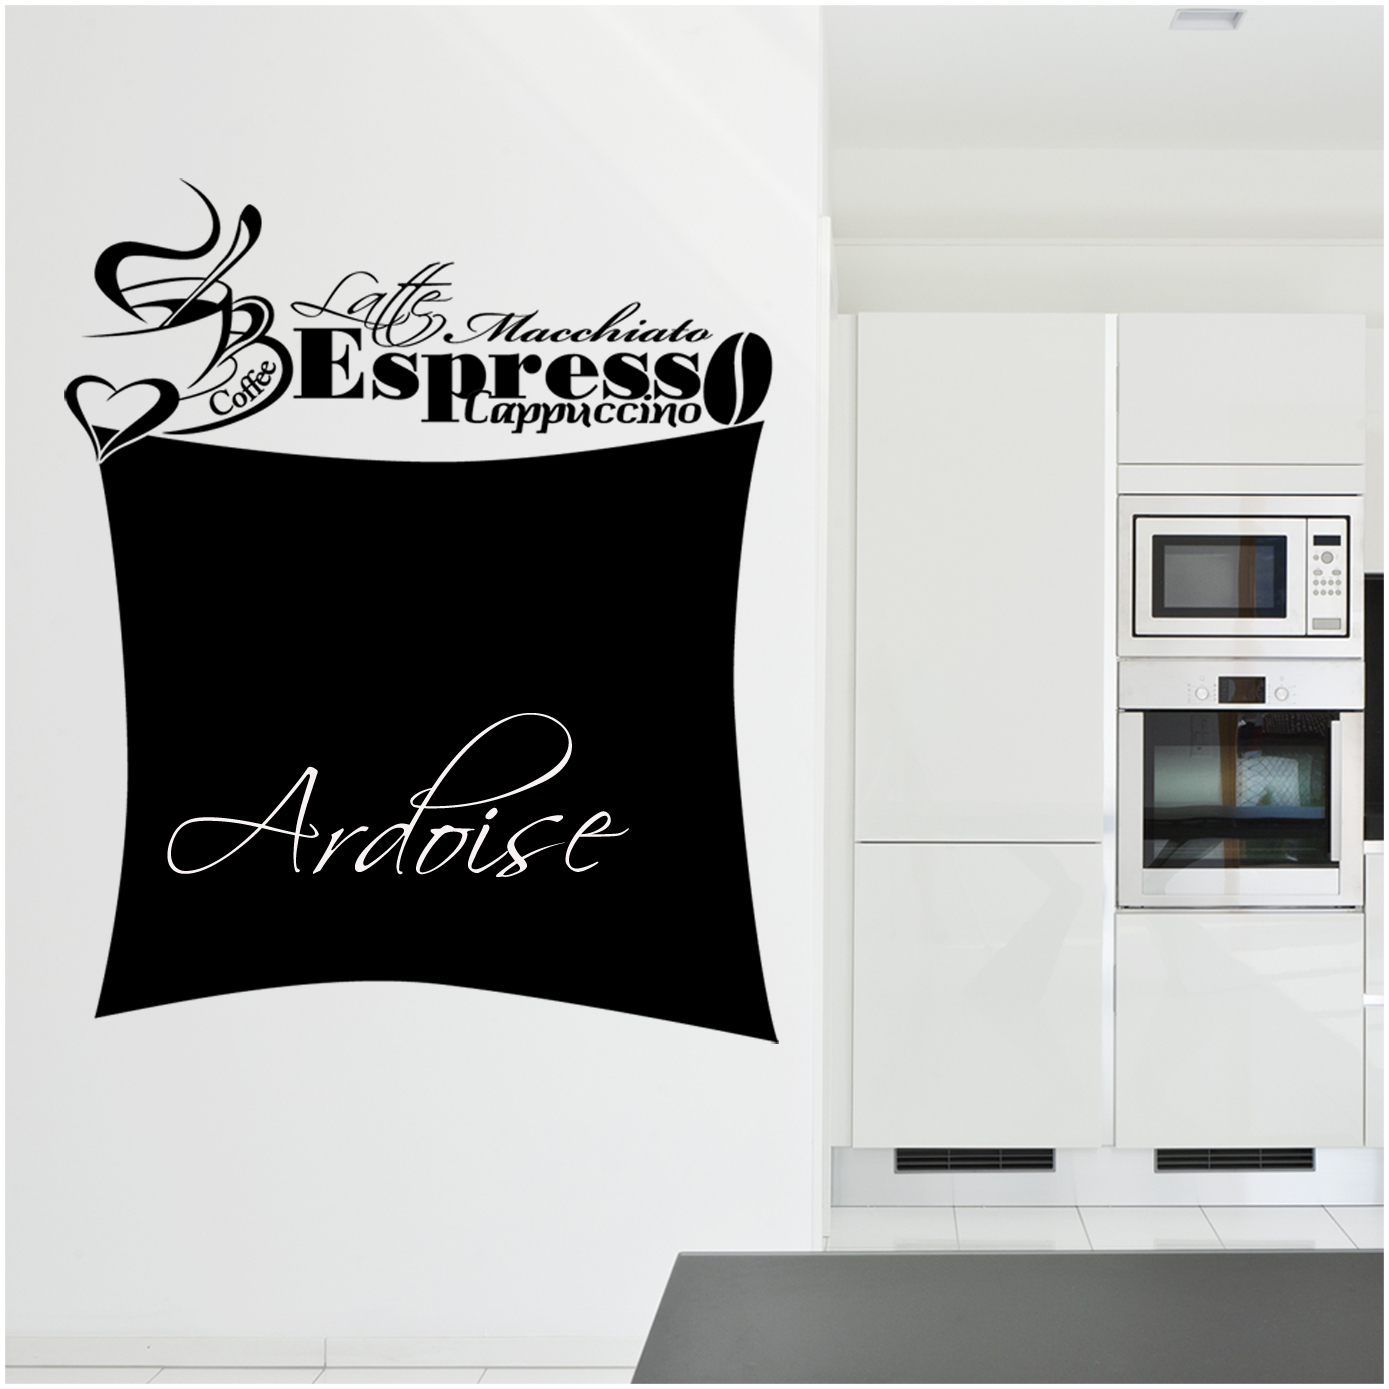 stickers ardoise tasse caf pas cher. Black Bedroom Furniture Sets. Home Design Ideas